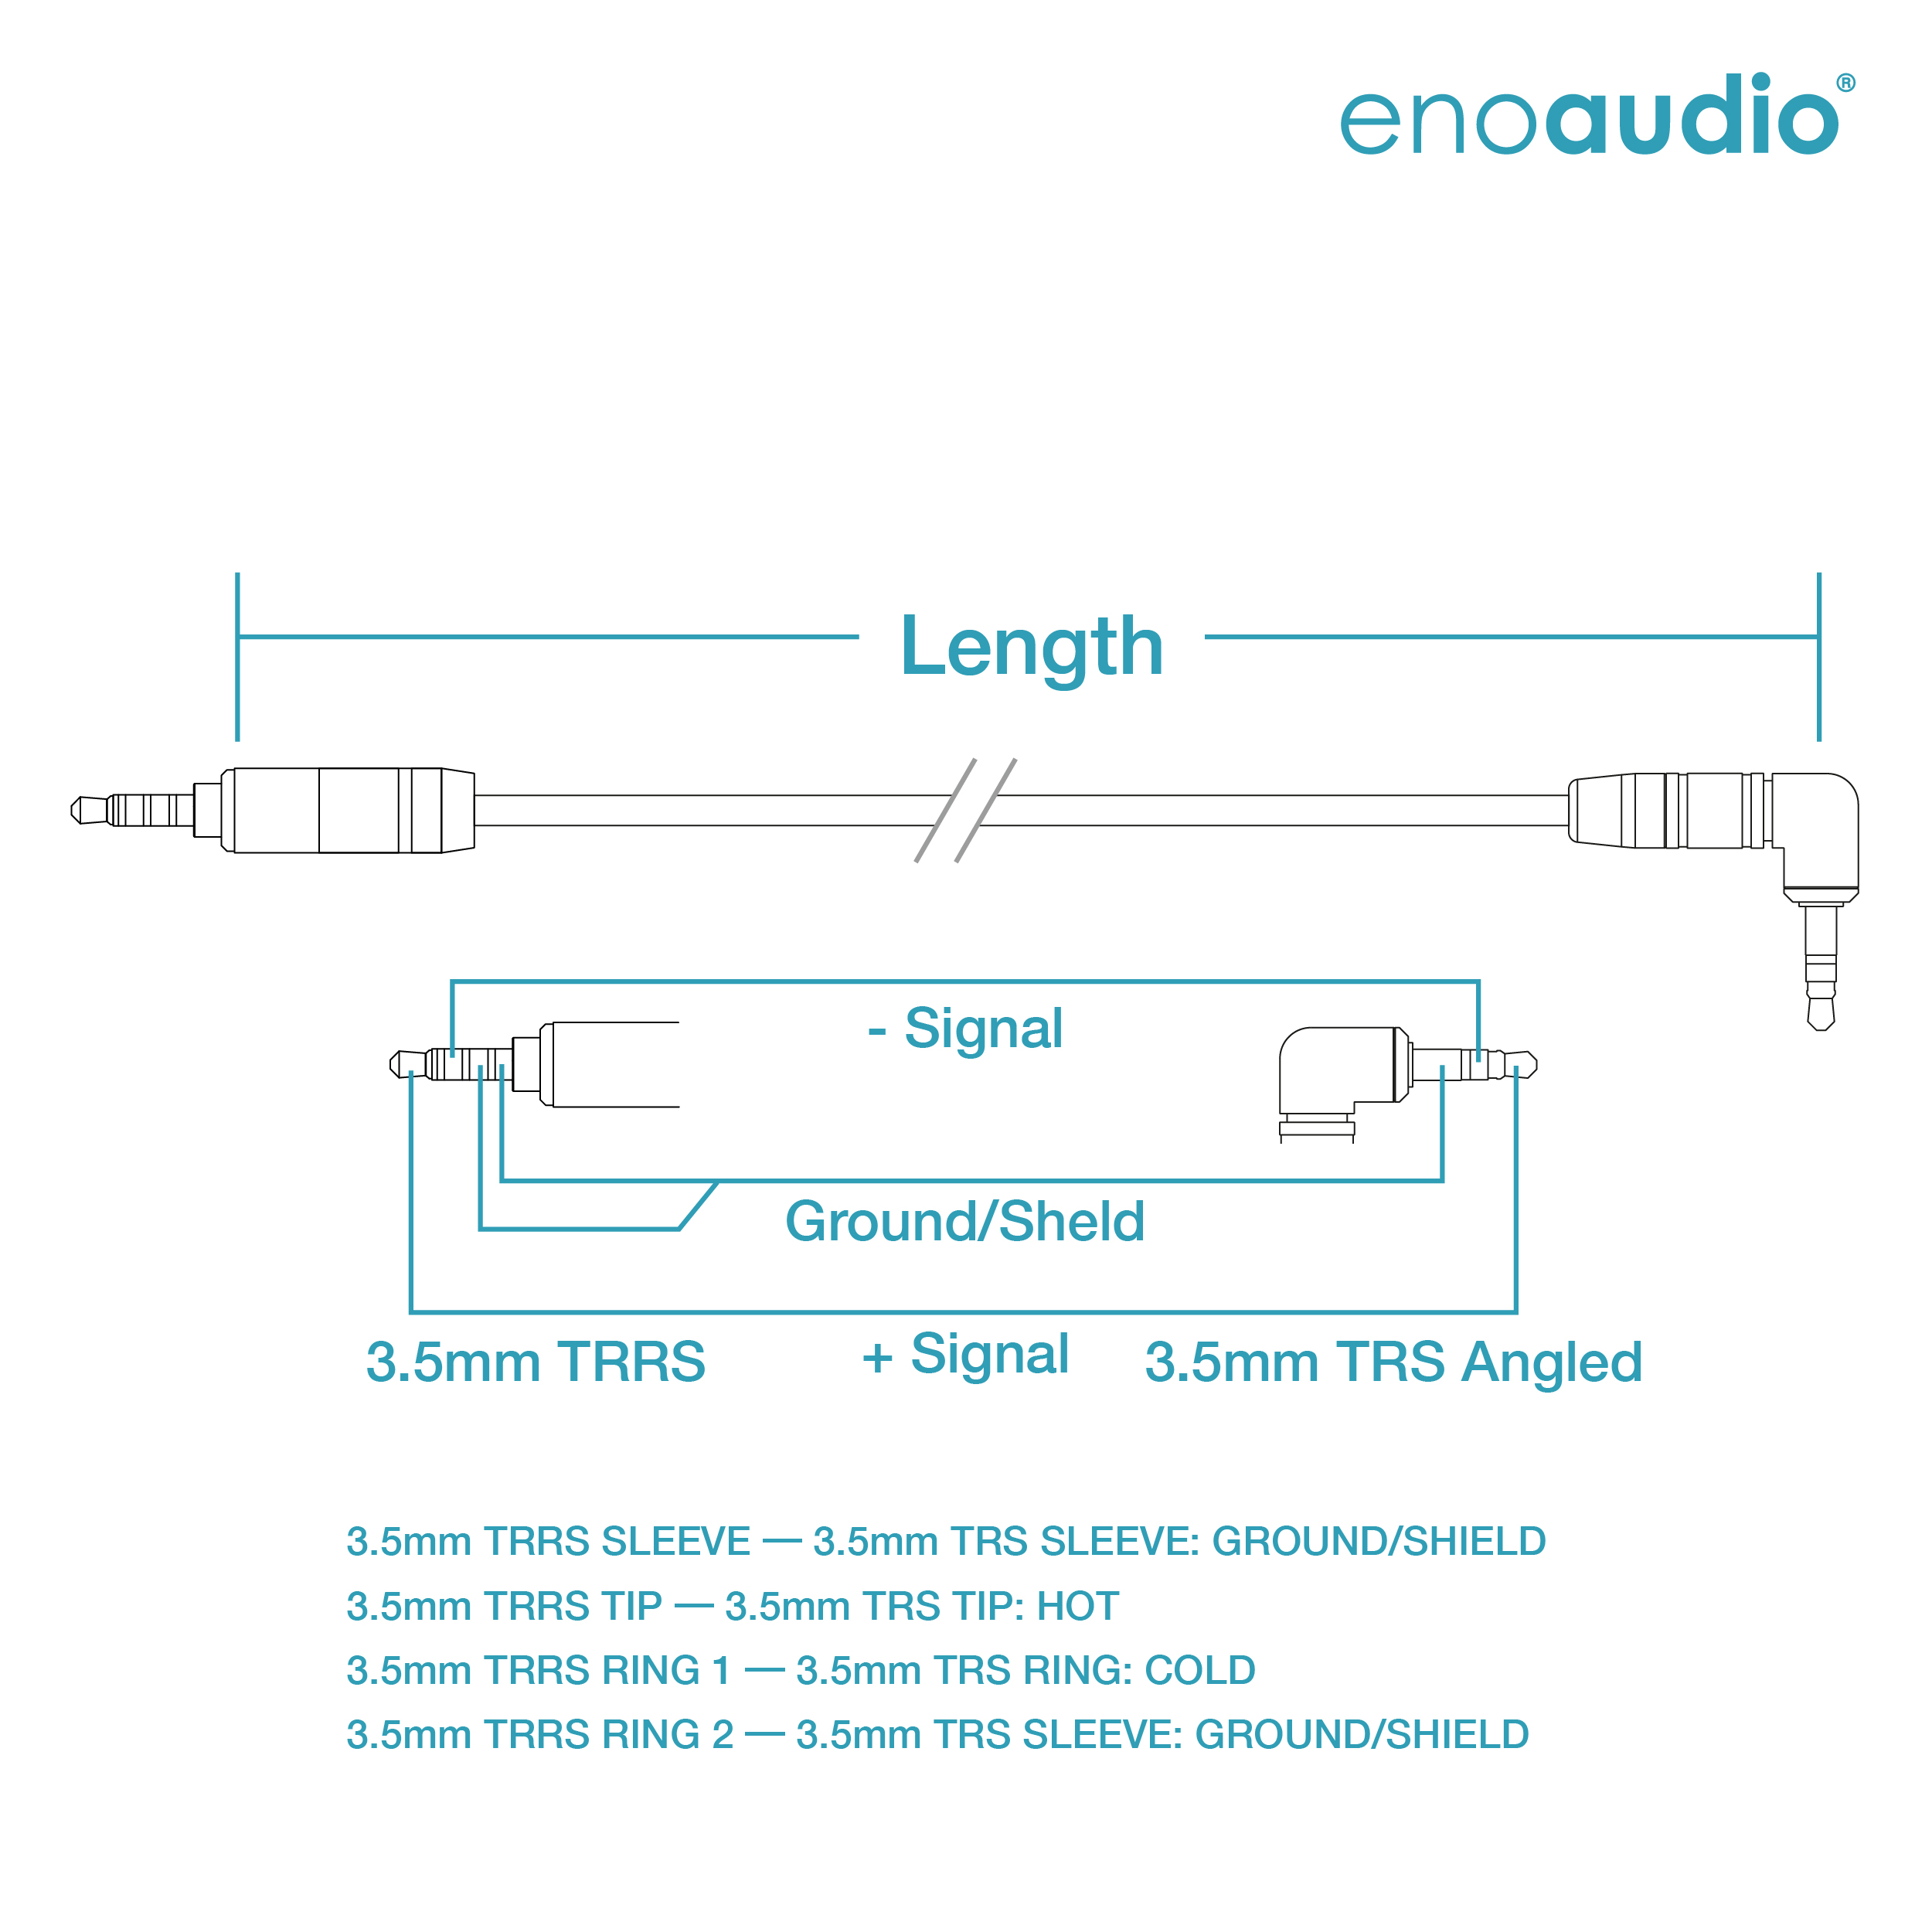 trs cable wiring diagram 3 5mm trrs wiring diagram free picture wiring diagram data  3 5mm trrs wiring diagram free picture